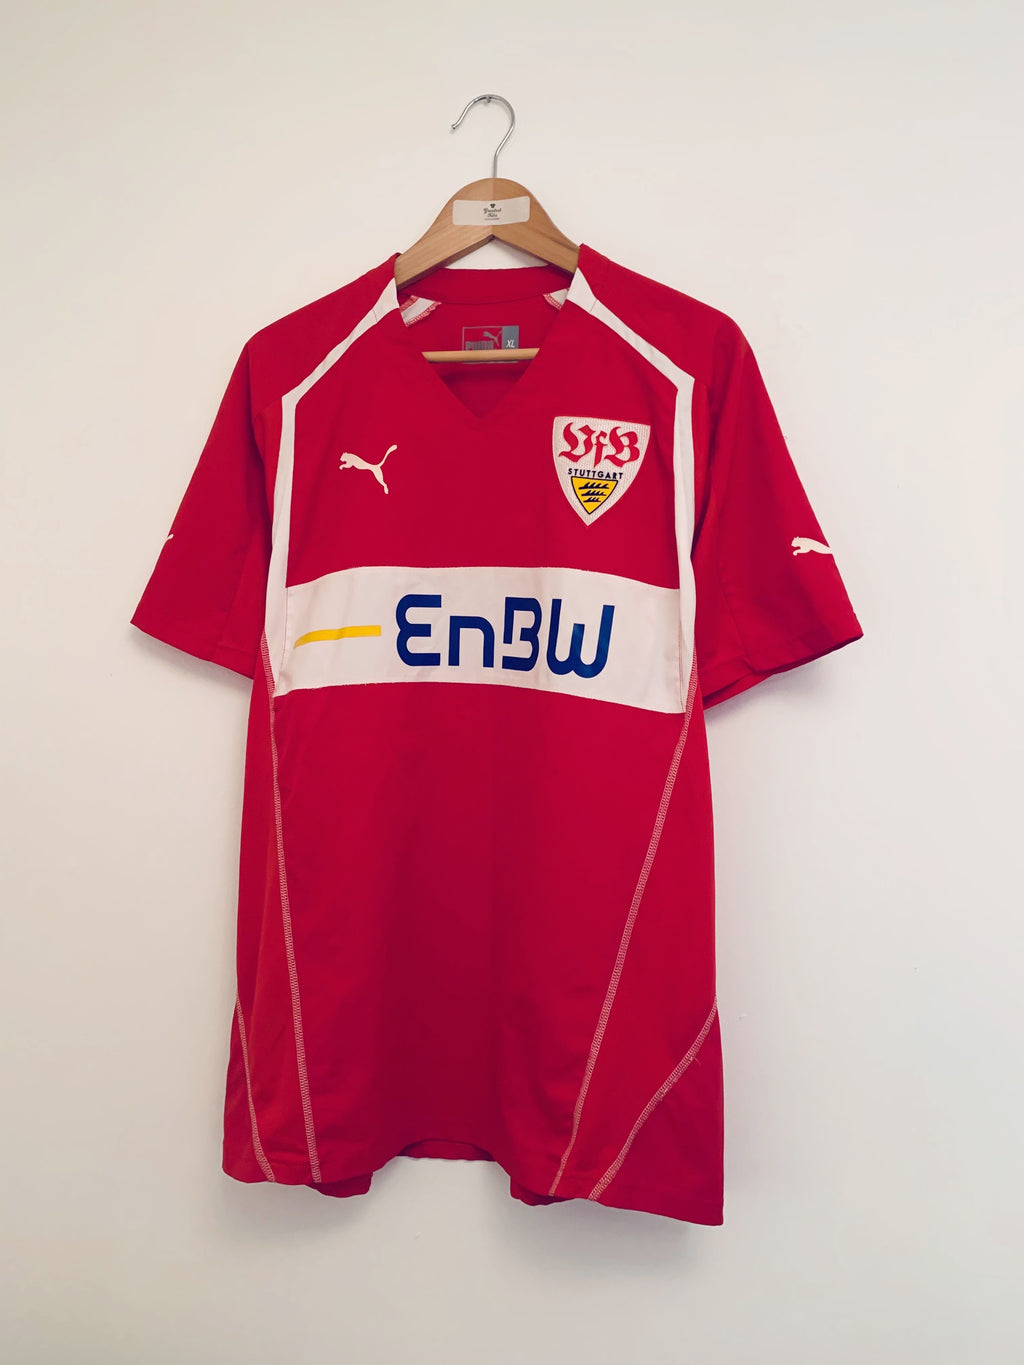 2005/06 Stuttgart Away Shirt #3 (Stranzl) (XL) 9/10